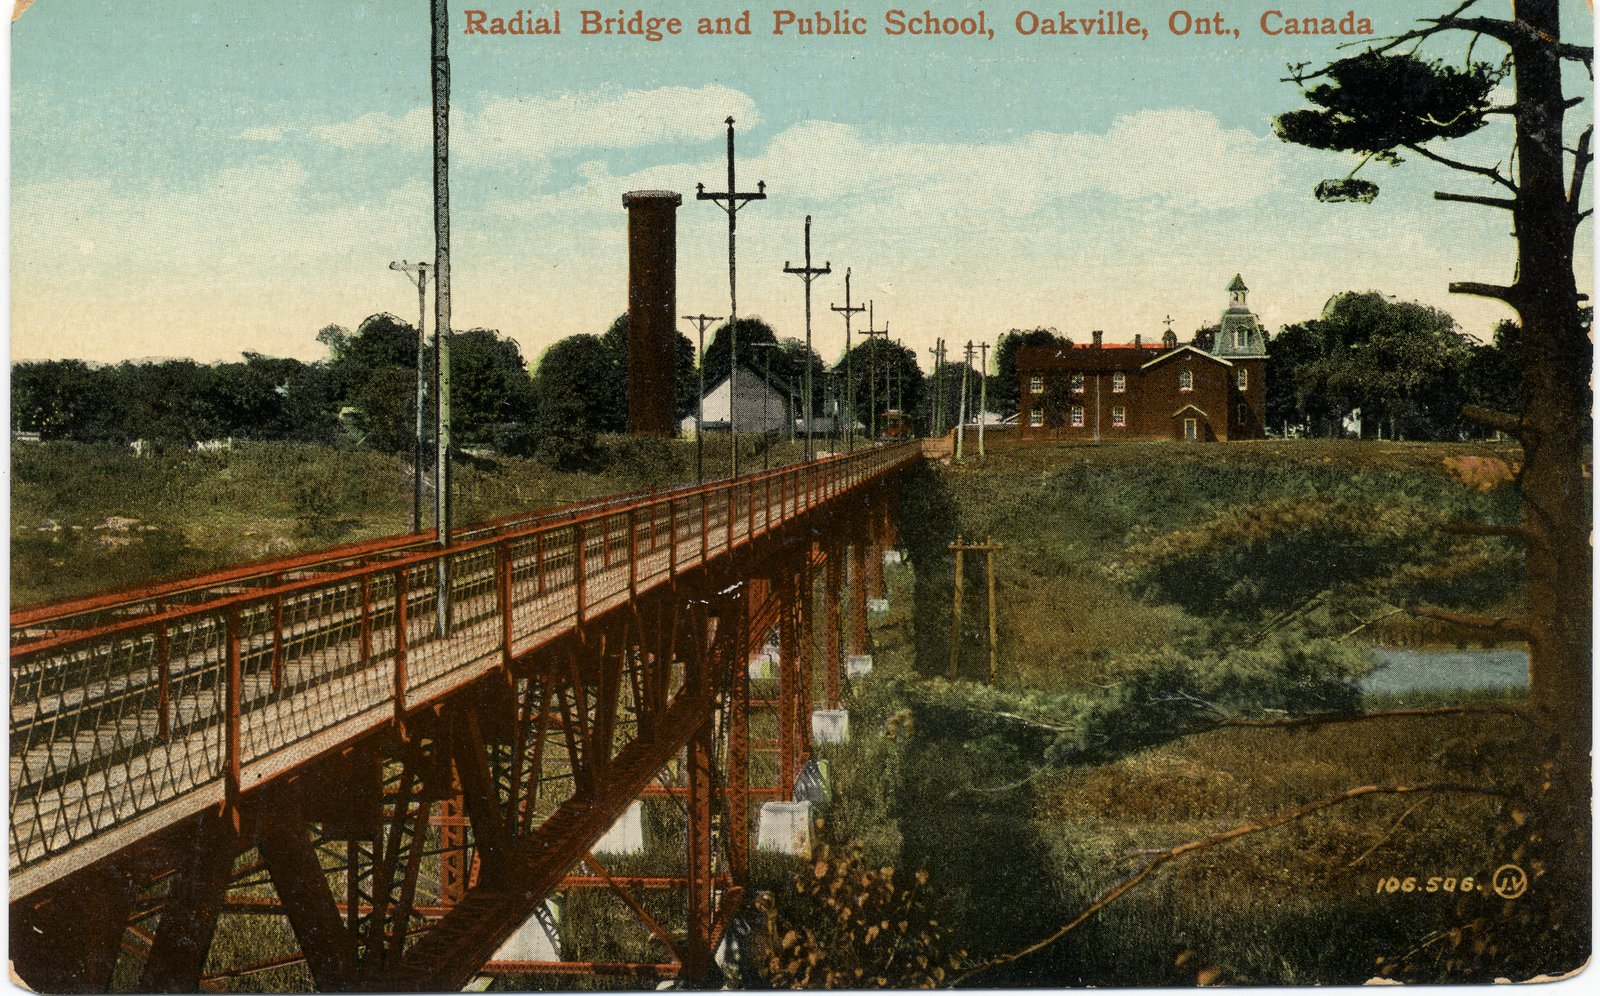 Postcard: Radial Bridge and Public School, Oakville, Ont., Canada